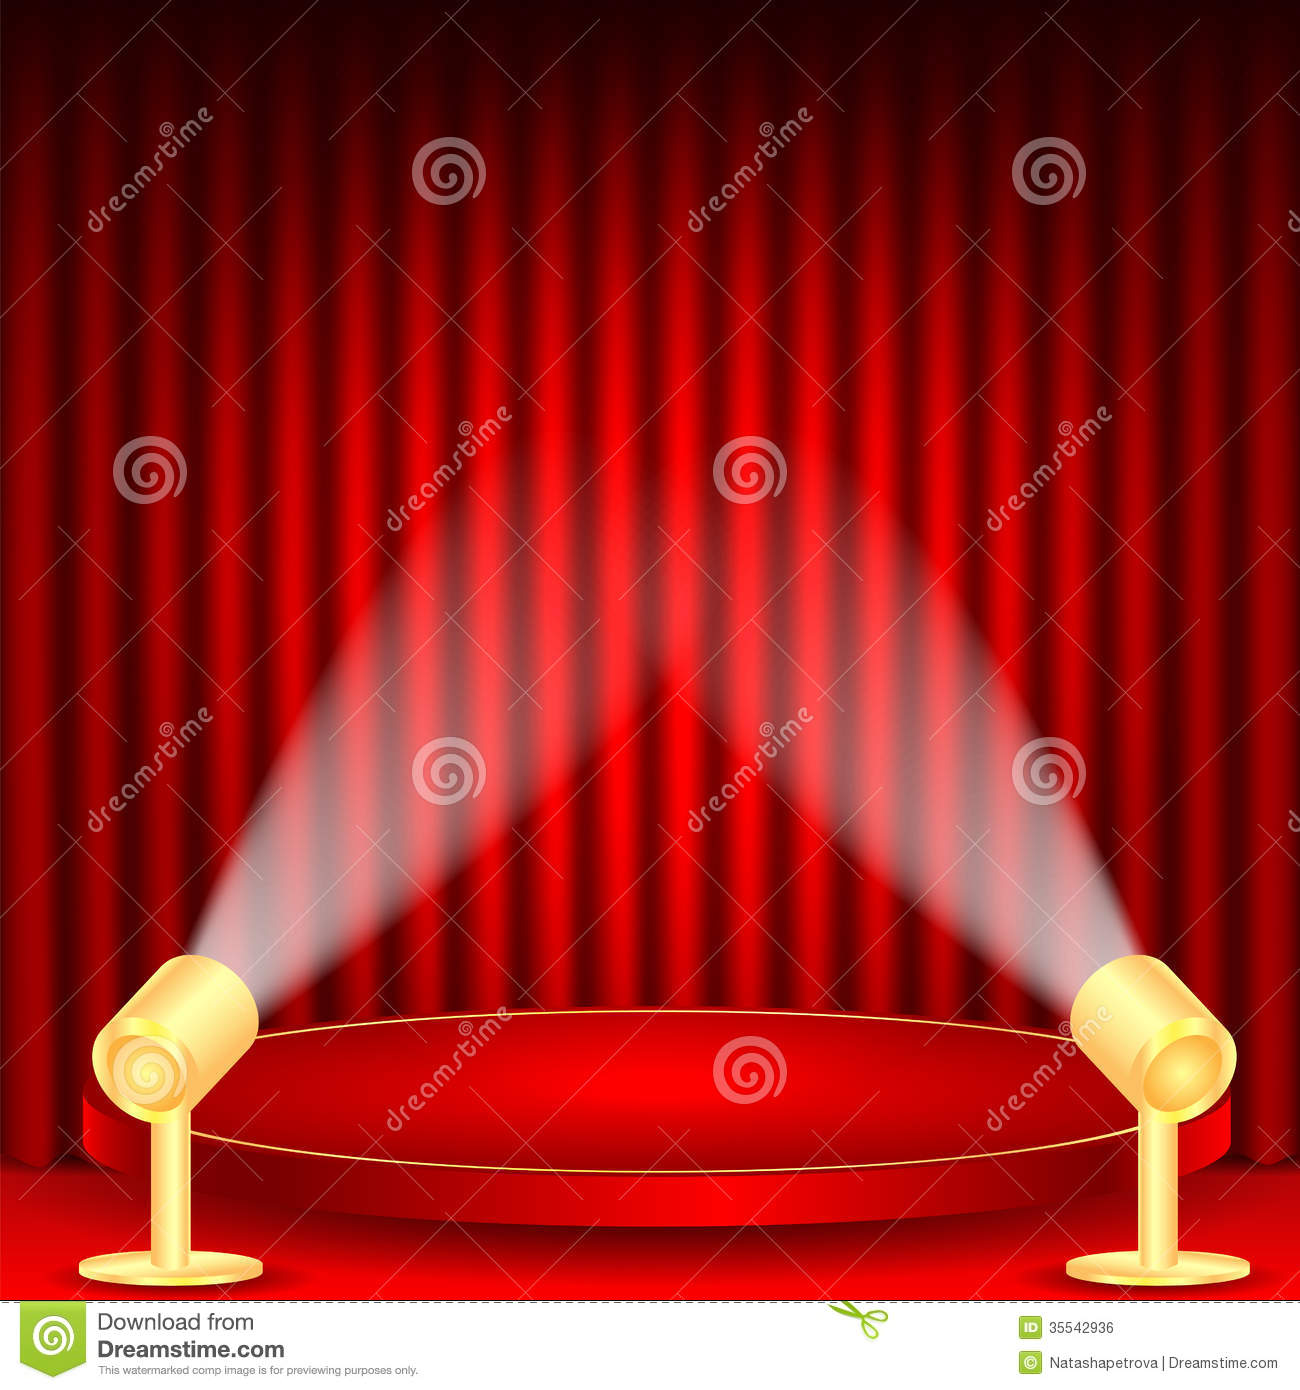 Image Result For Red Curtain Spotlight Background